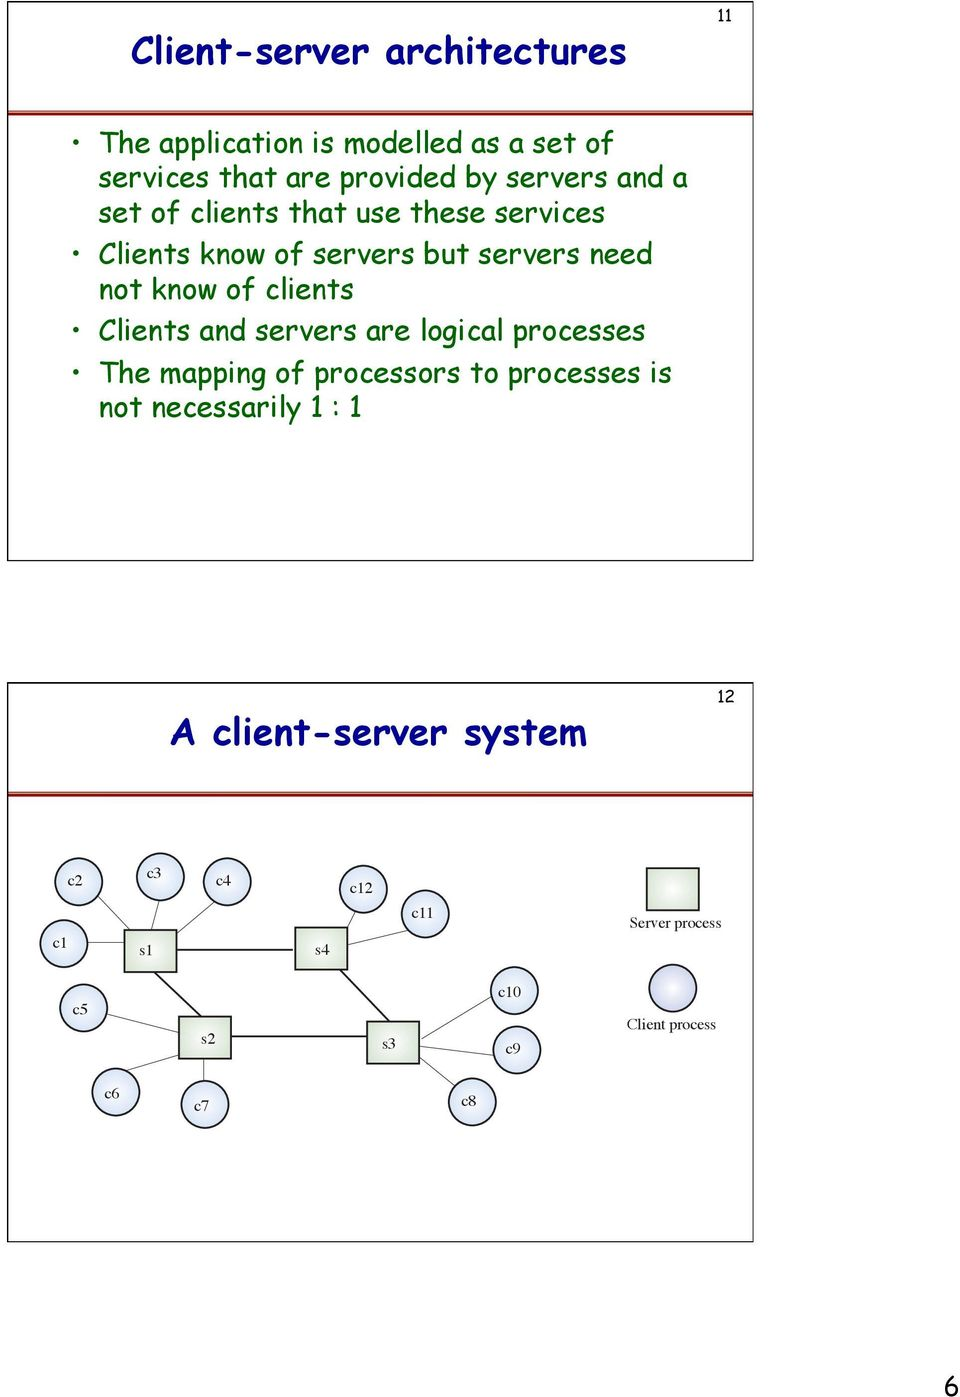 clients Clients and servers are logical processes The mapping of processors to processes is not necessarily